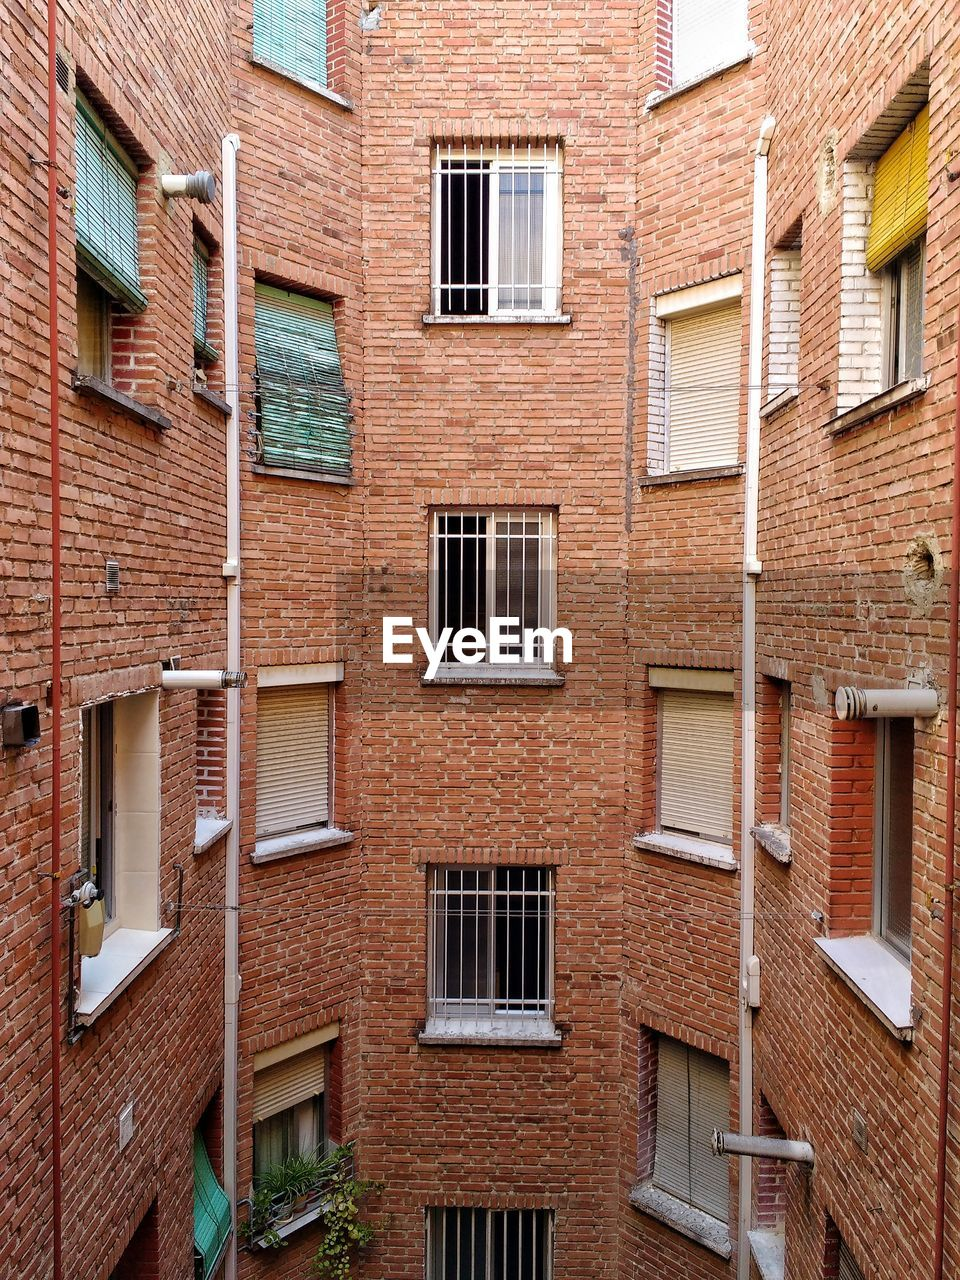 WINDOWS OF A RESIDENTIAL BRICK BUILDING